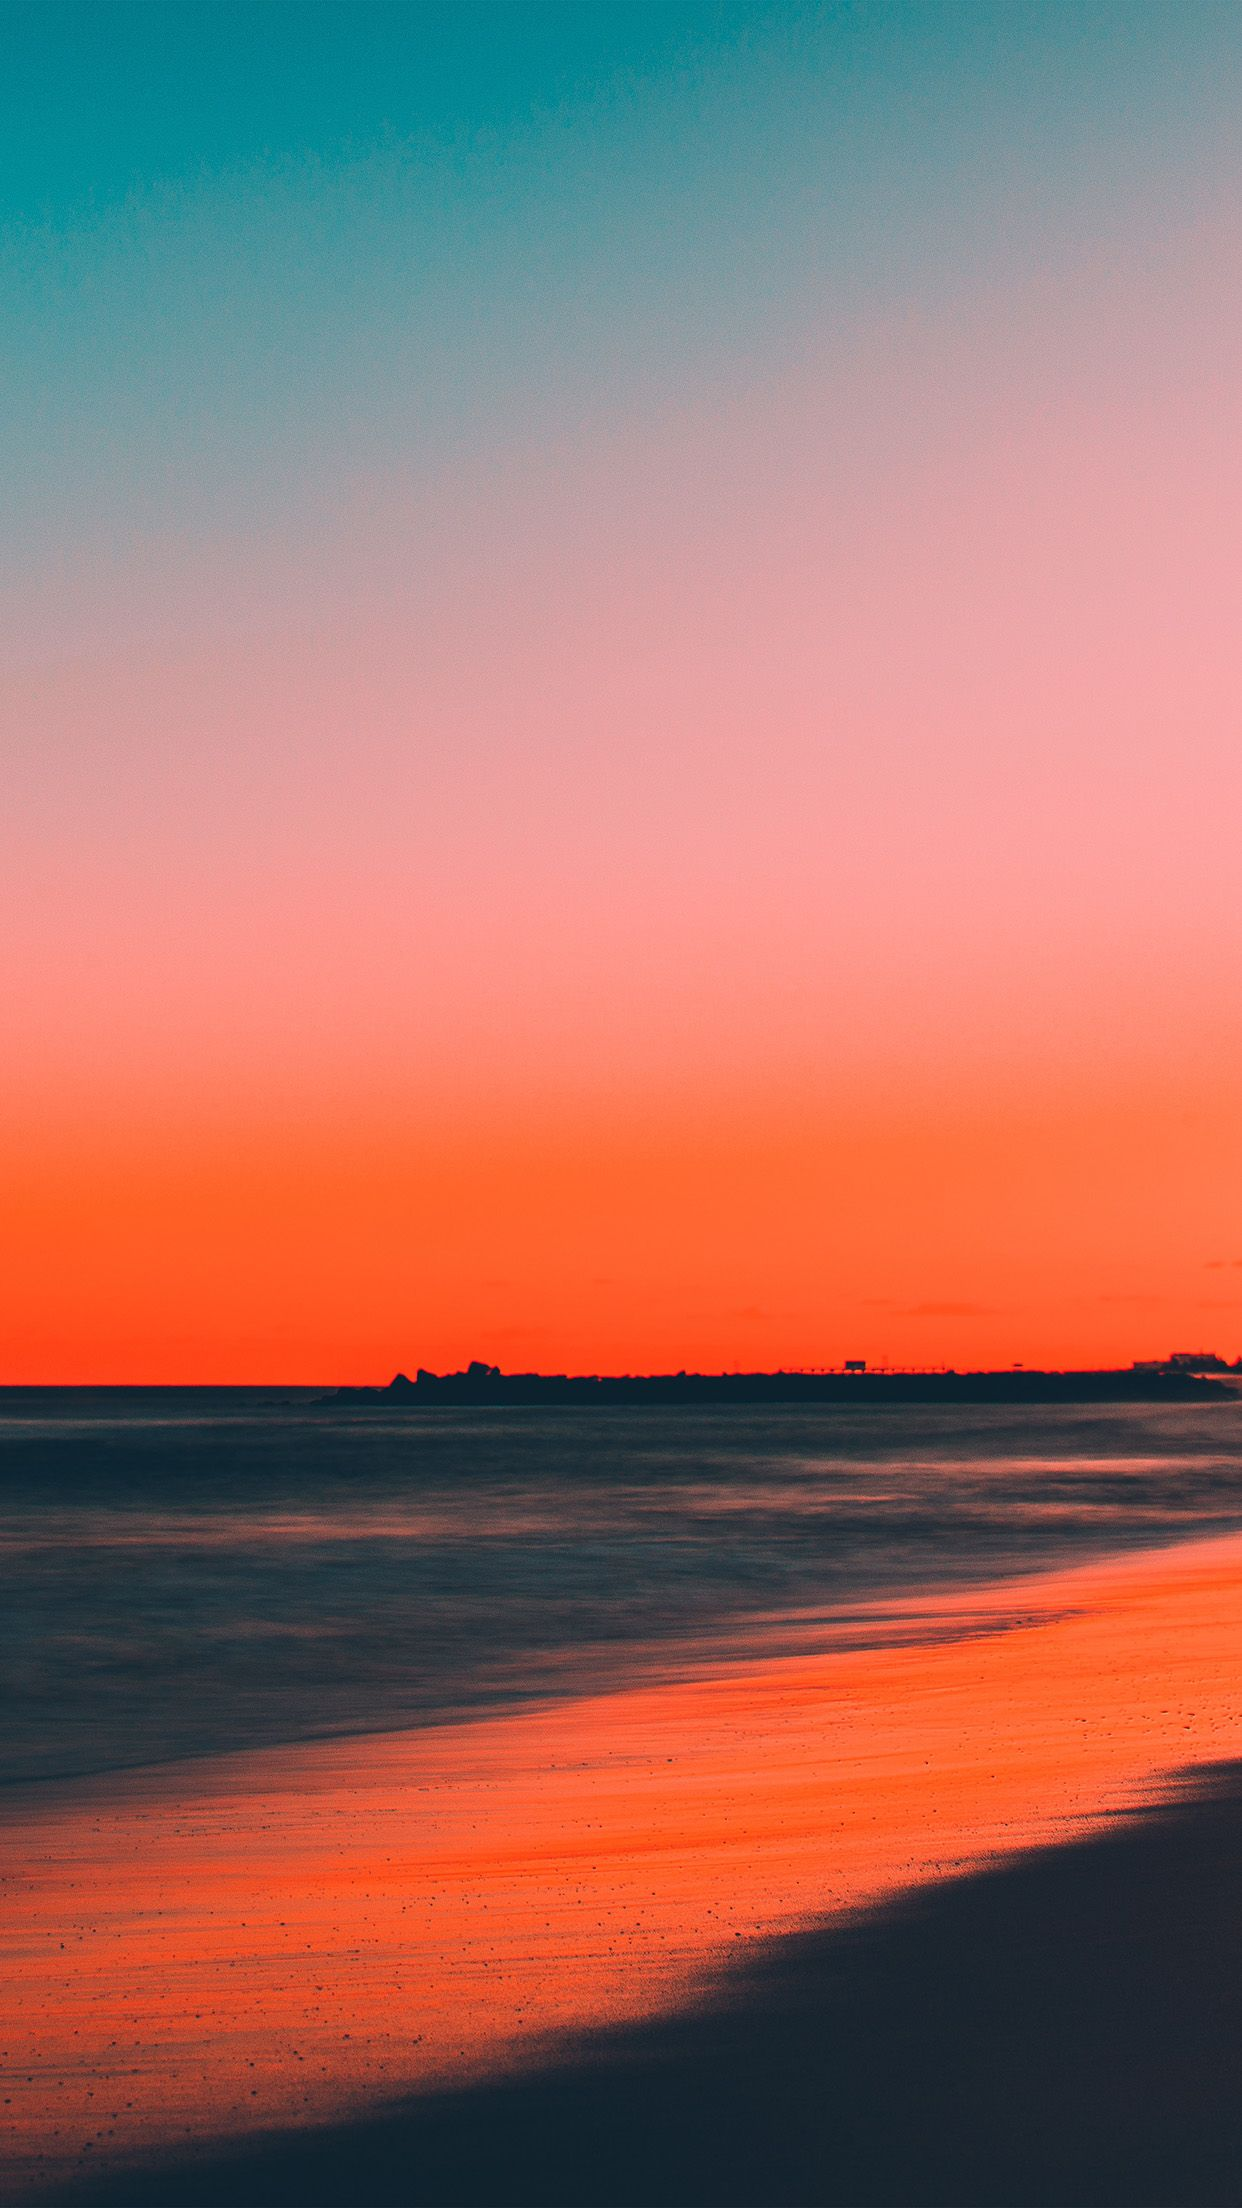 Wallpaper Collection 37 Best Free Hd Sunset Wallpaper Iphone Background To Download Pc M In 2020 Sunset Wallpaper Beach Wallpaper Beach Wallpaper Iphone